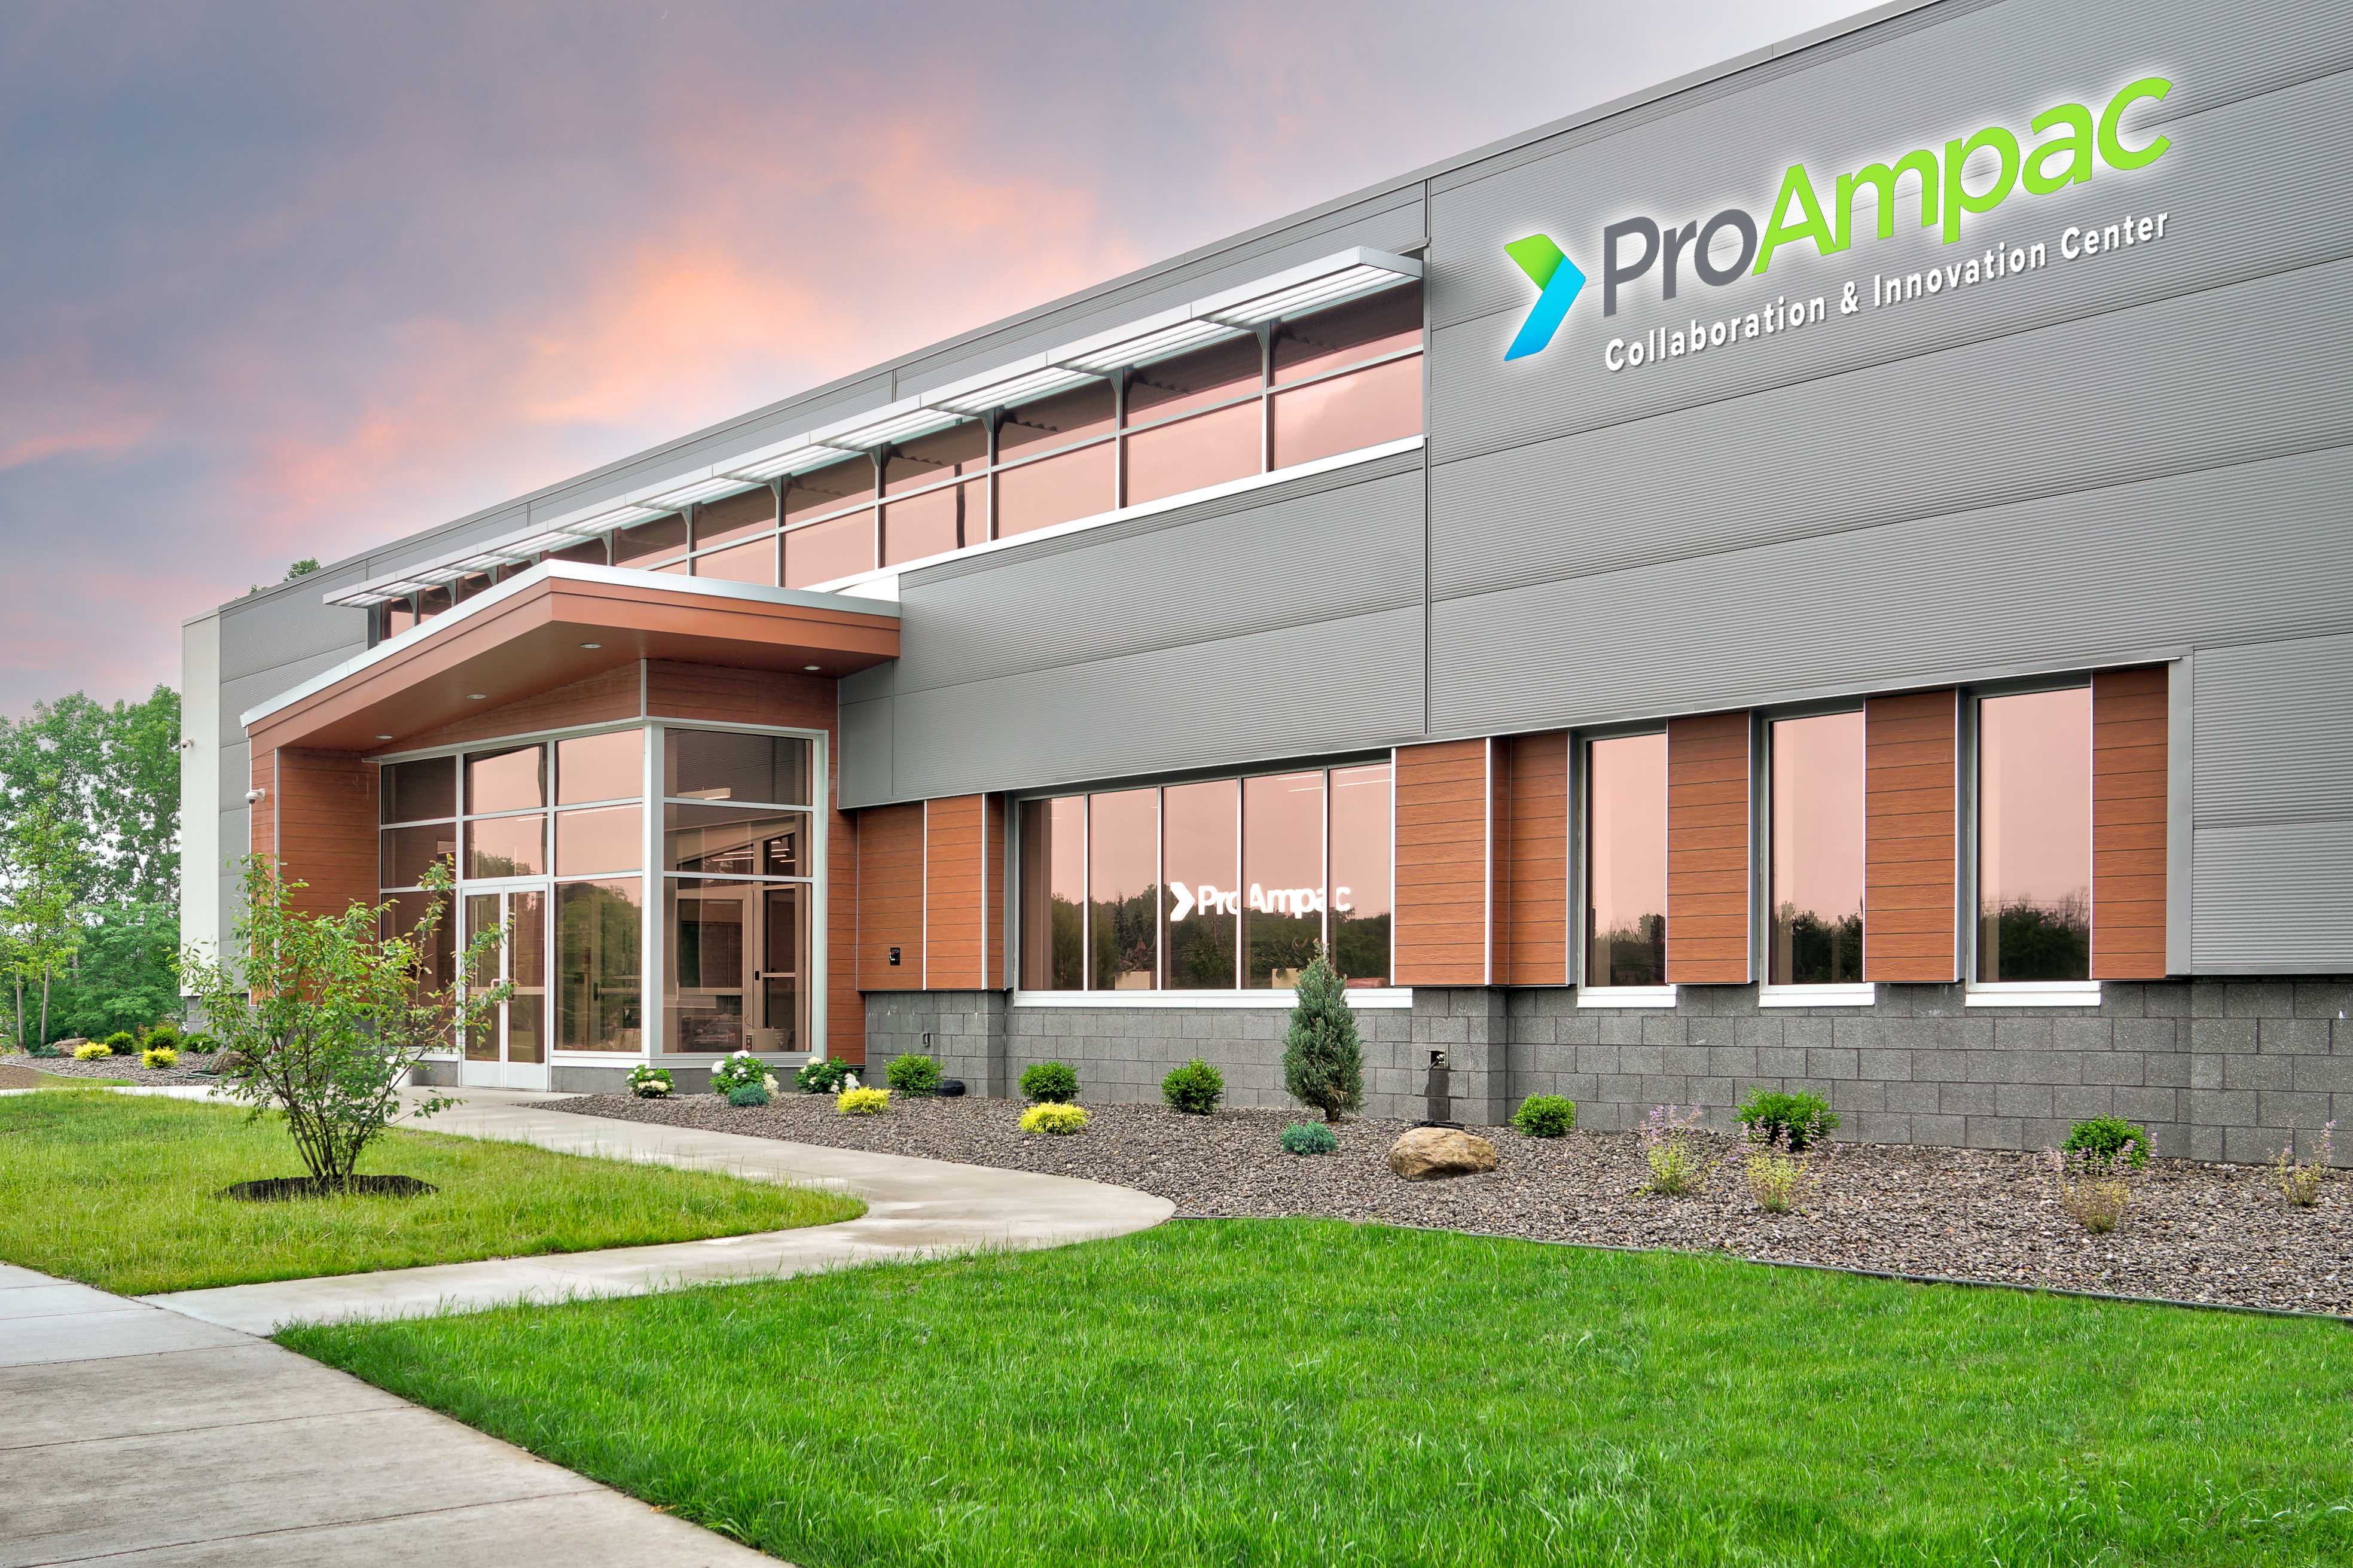 Artist rendering of the ProAmpac global Collaboration & Innovation Center in Ogden, N.Y. near Rochester that opened with a July 14, 2021, ribbon-cutting event attended by Lieutenant Governor Kathy Hochul and other New York State and local officials and regional business leaders.